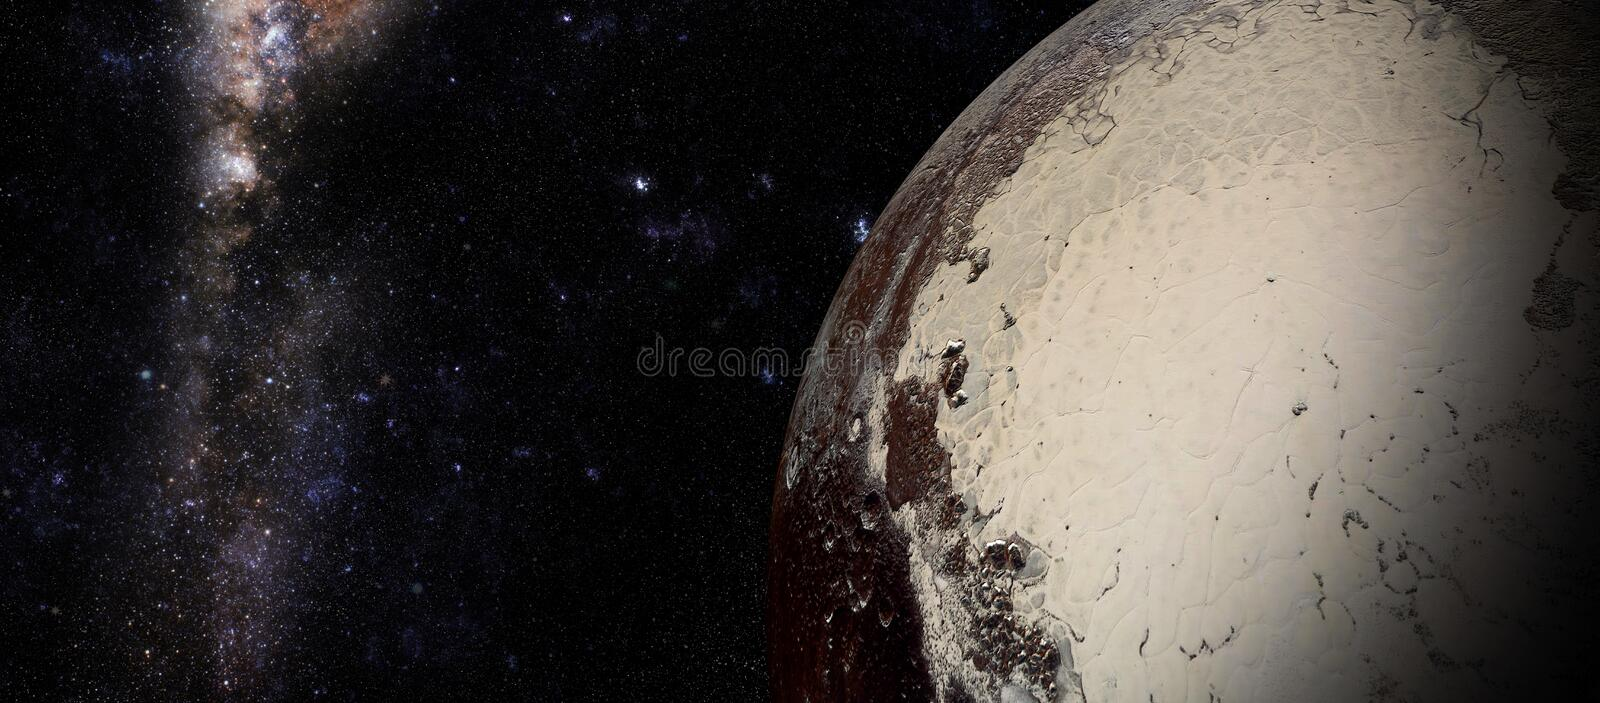 The Pluto shot from space vector illustration